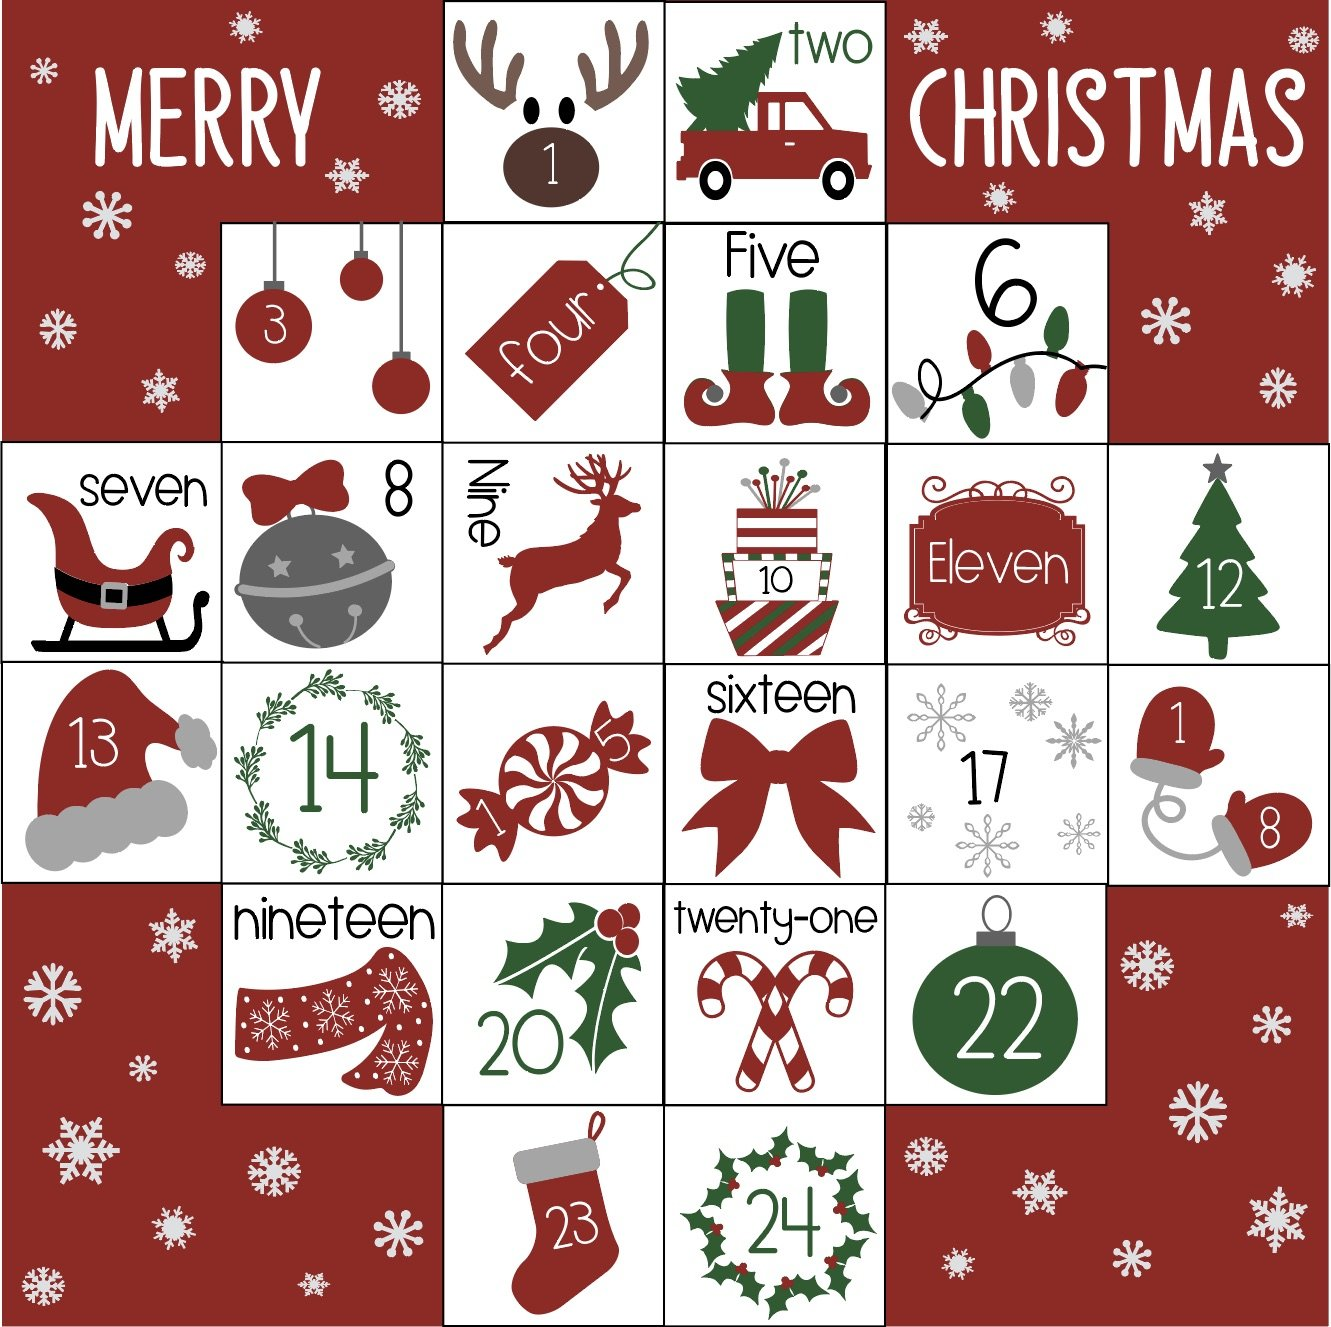 Advent Calendar Screenshot - Guide